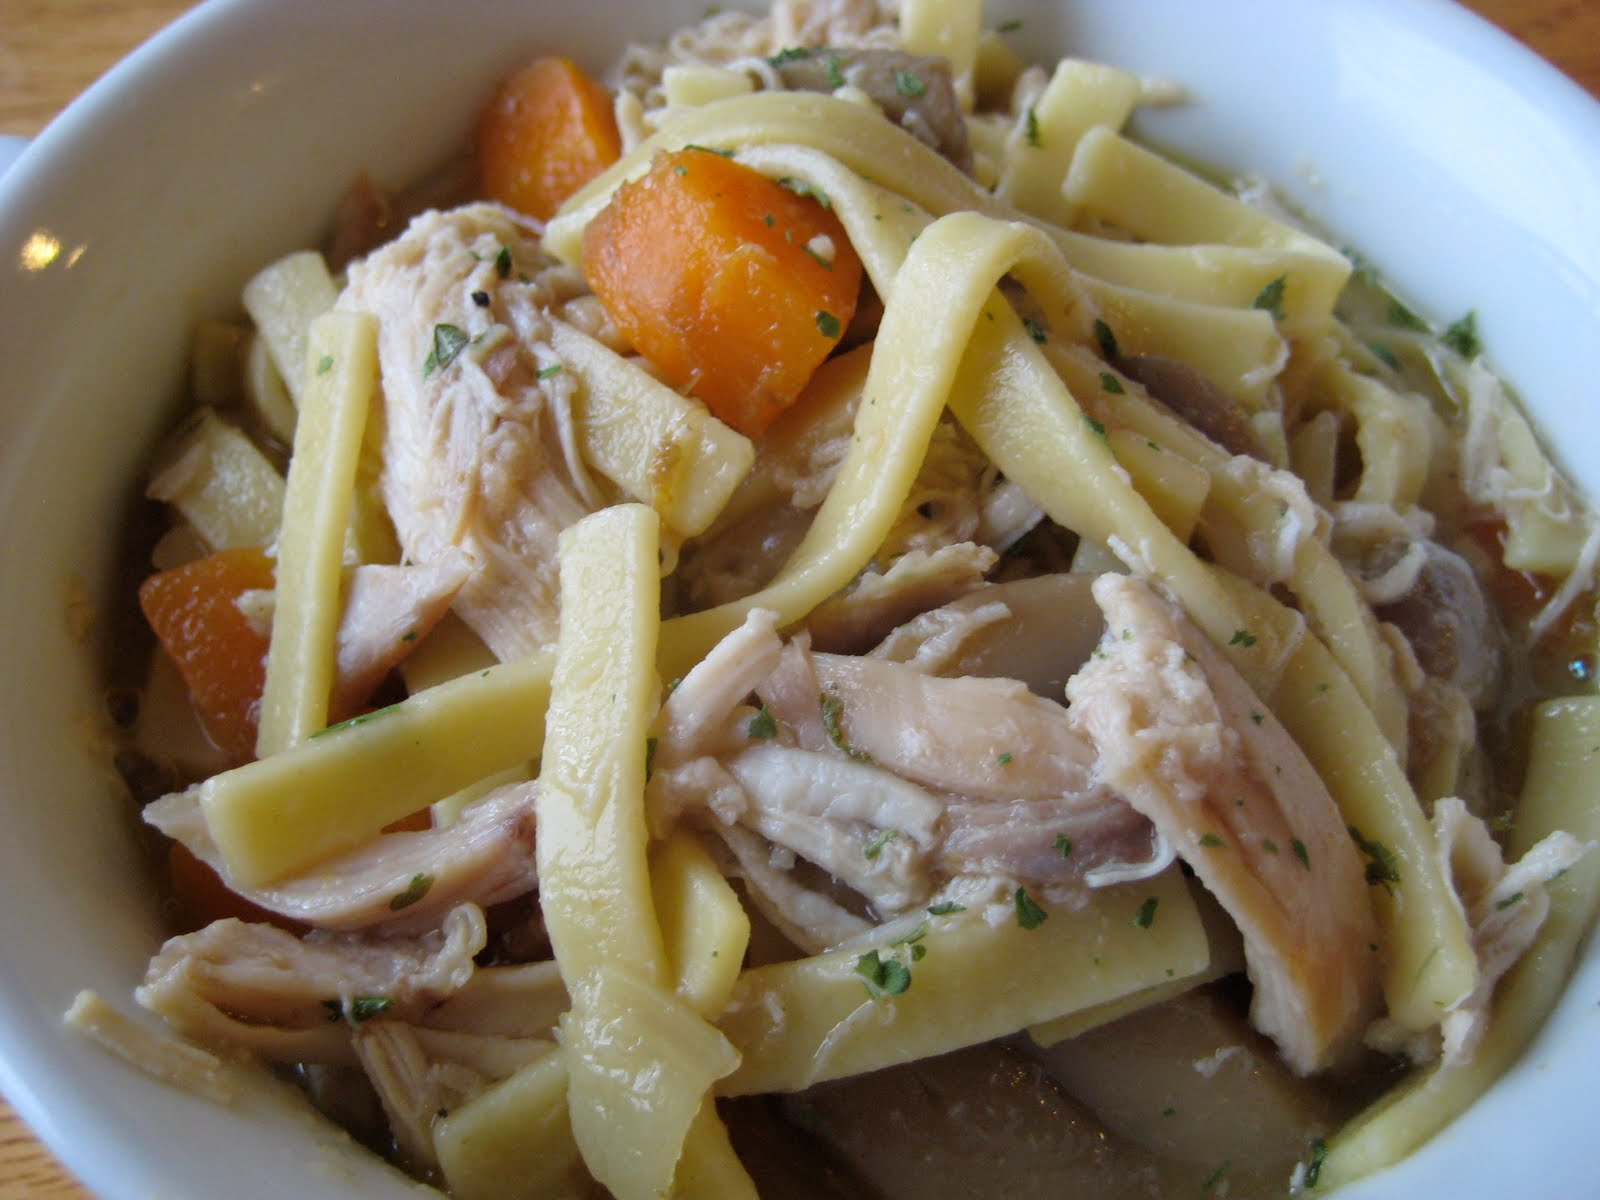 ... chicken and noodles my daily bread the best homemade chicken